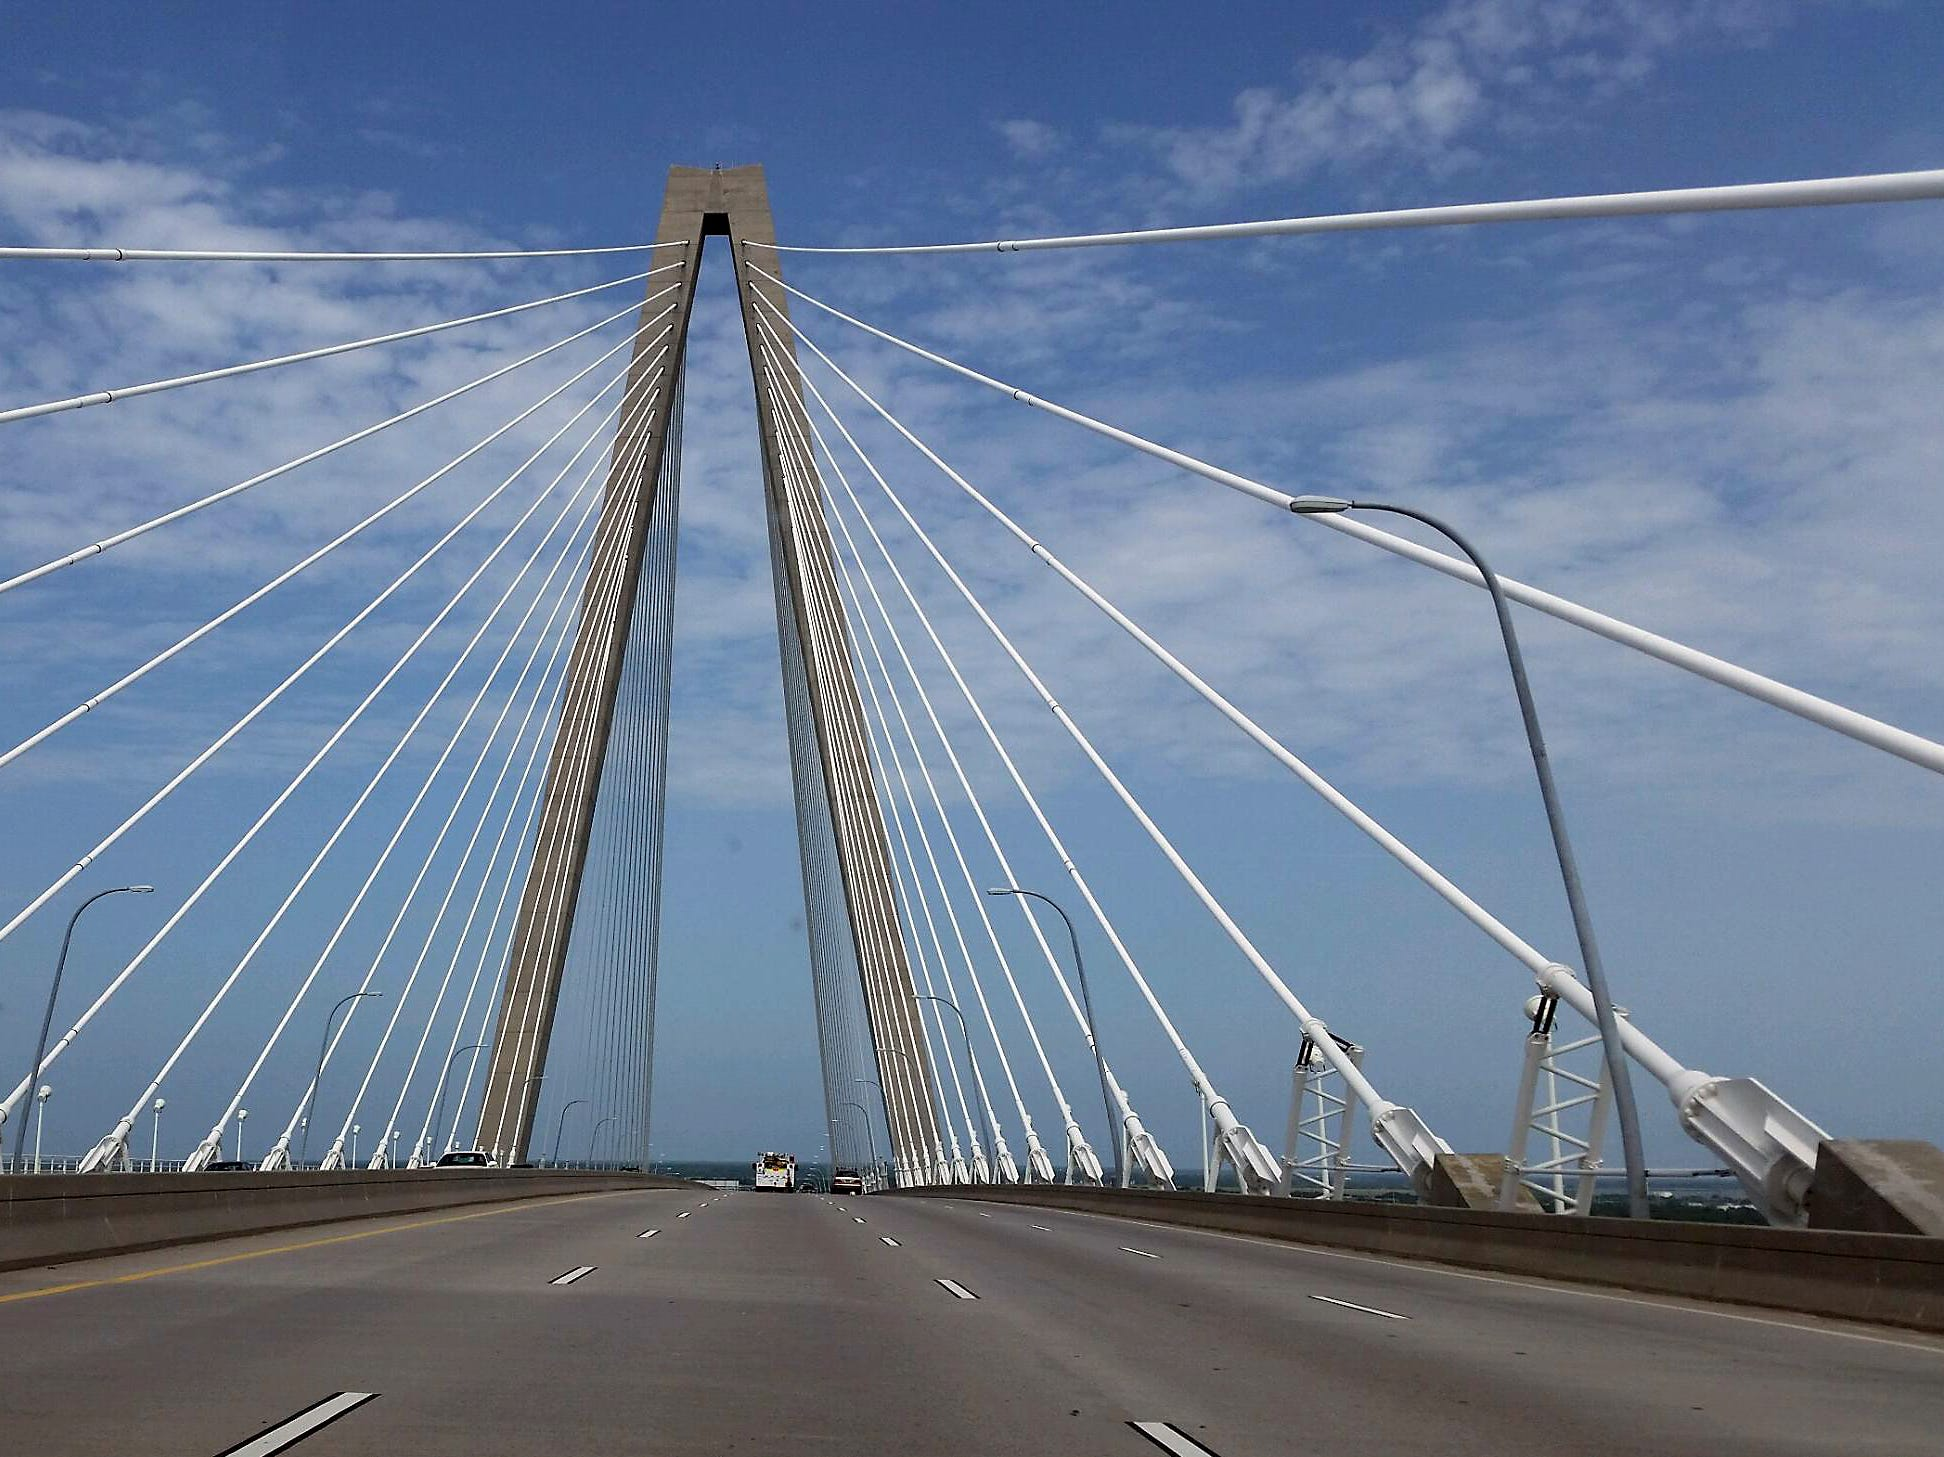 The Arthur Ravenel Jr. Bridge is a cable-stayed bridge over the Cooper River in South Carolina, connecting downtown Charleston to Mount Pleasant. It is named for Republican politician and businessman Arthur Ravenel Jr. of Charleston.